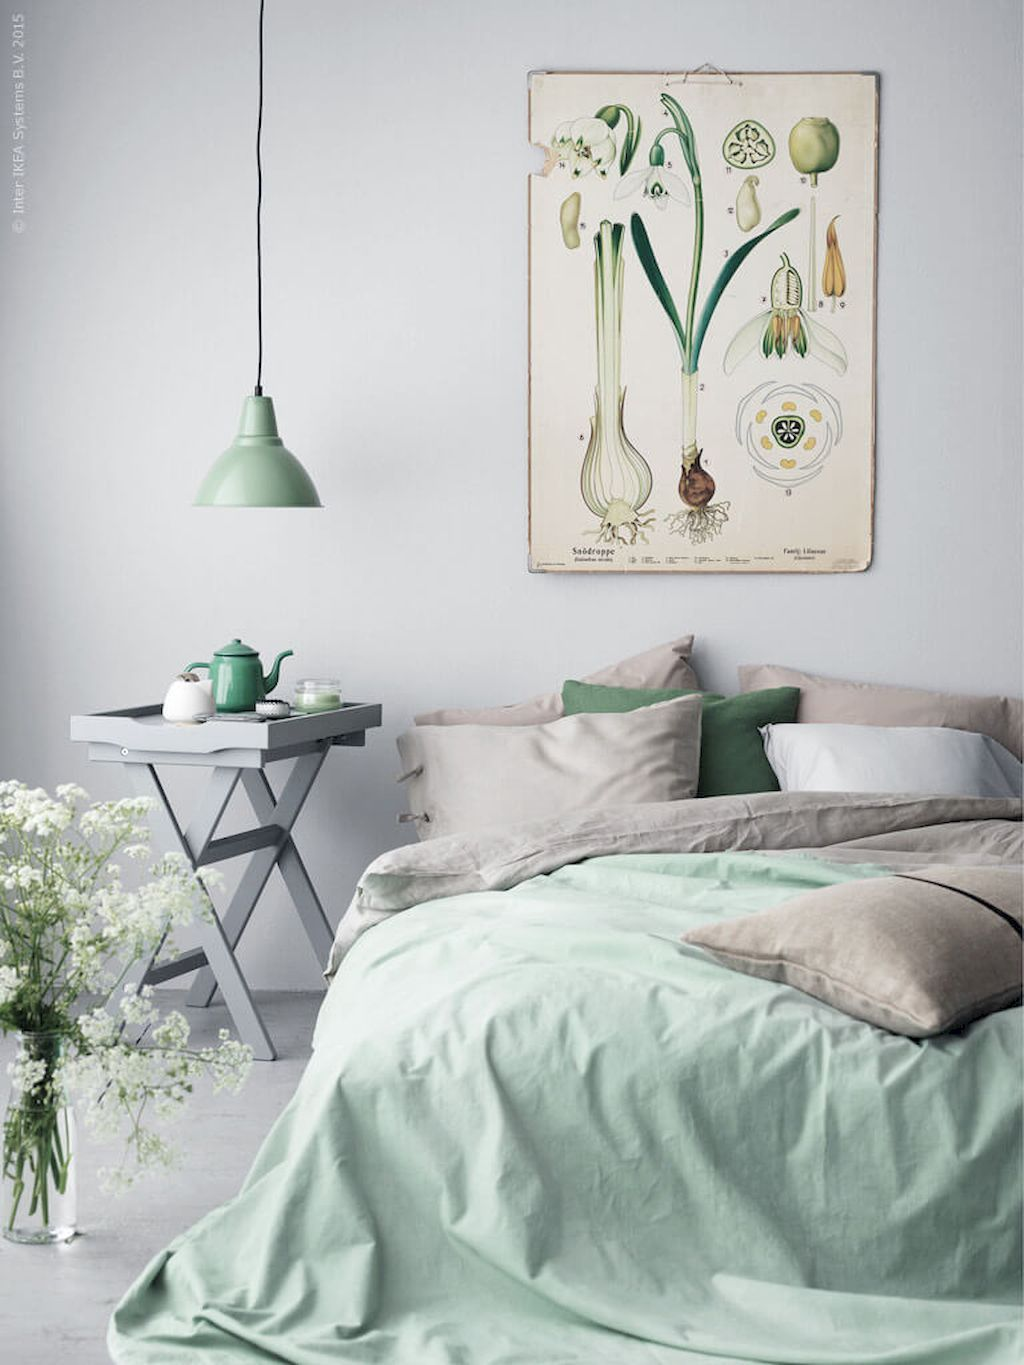 Scandinavian Homes Have A Calm Simplicity Utility And Beauty Pared Backed Style That Is Centred Around Warm Functionality Fresh Lines F 5 Home Vert Chambre Deco Et Deco Chambre